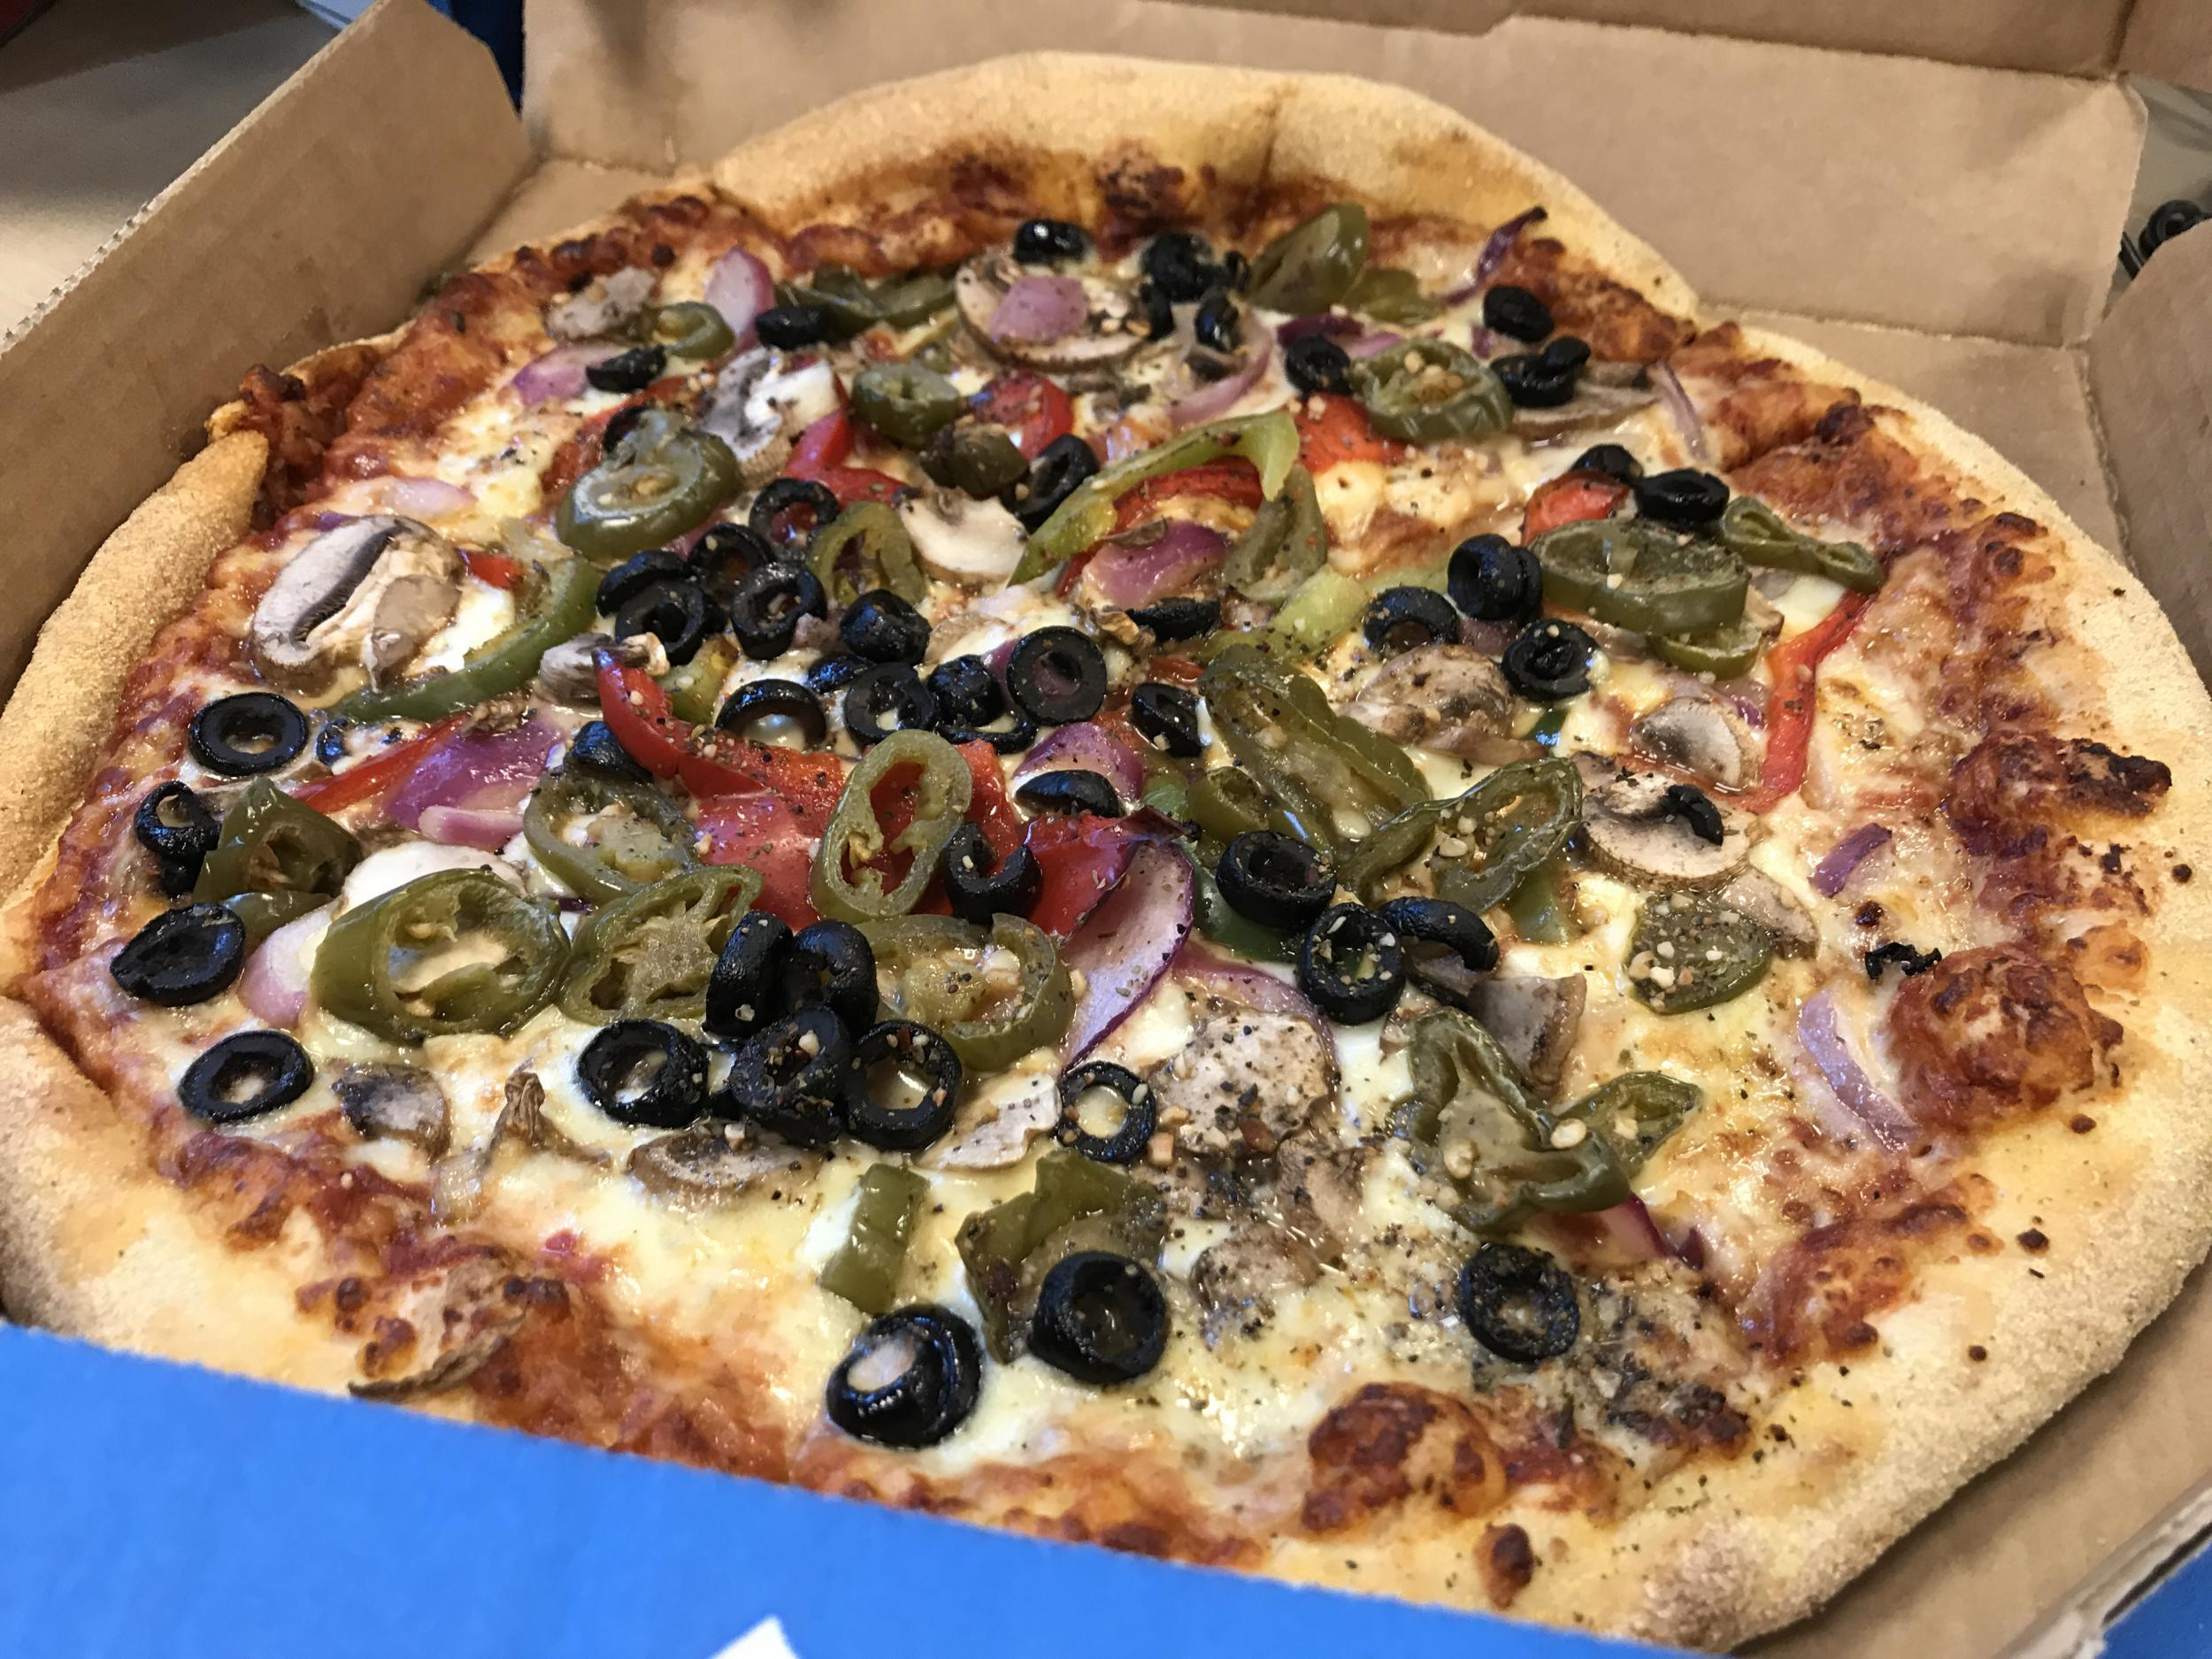 No-deal Brexit: Domino's stockpiling pizza toppings to avoid disruption 1